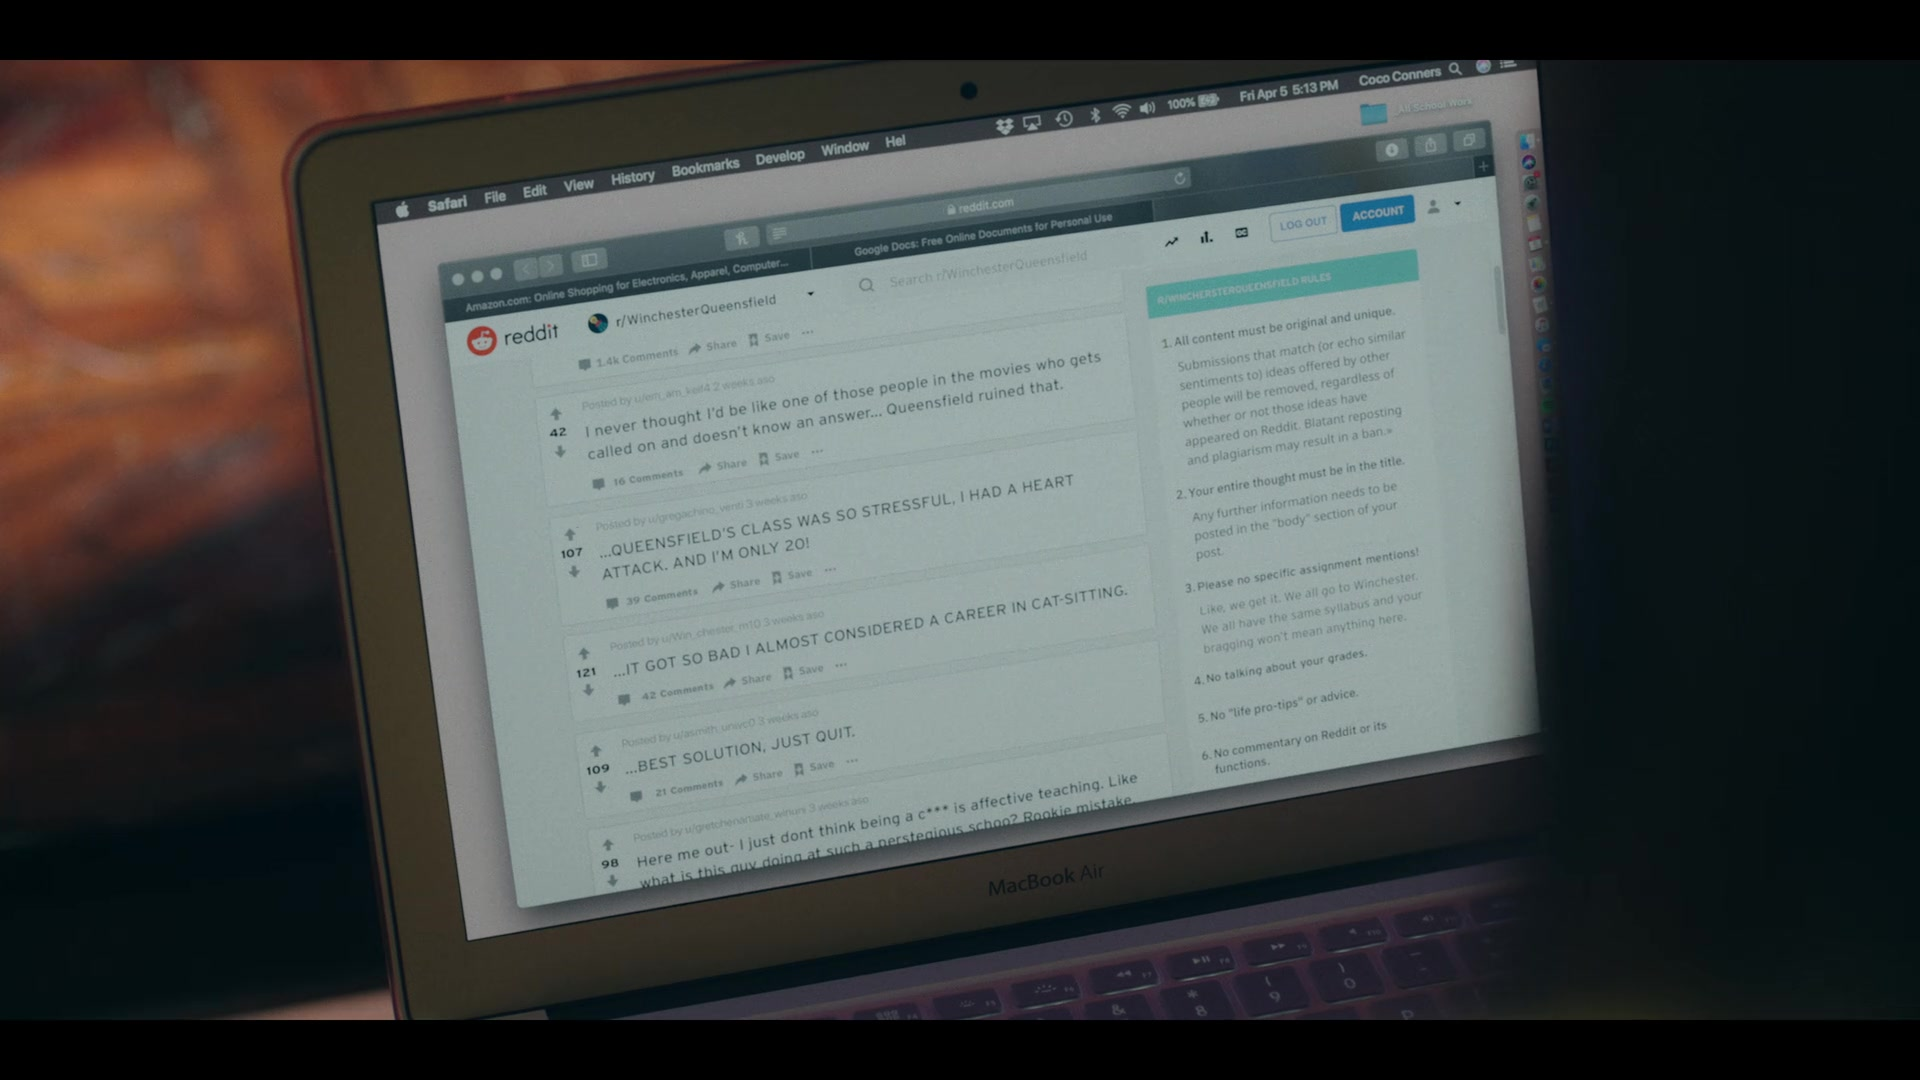 Reddit and MacBook Air in Dear White People - Season 3, Episode 5